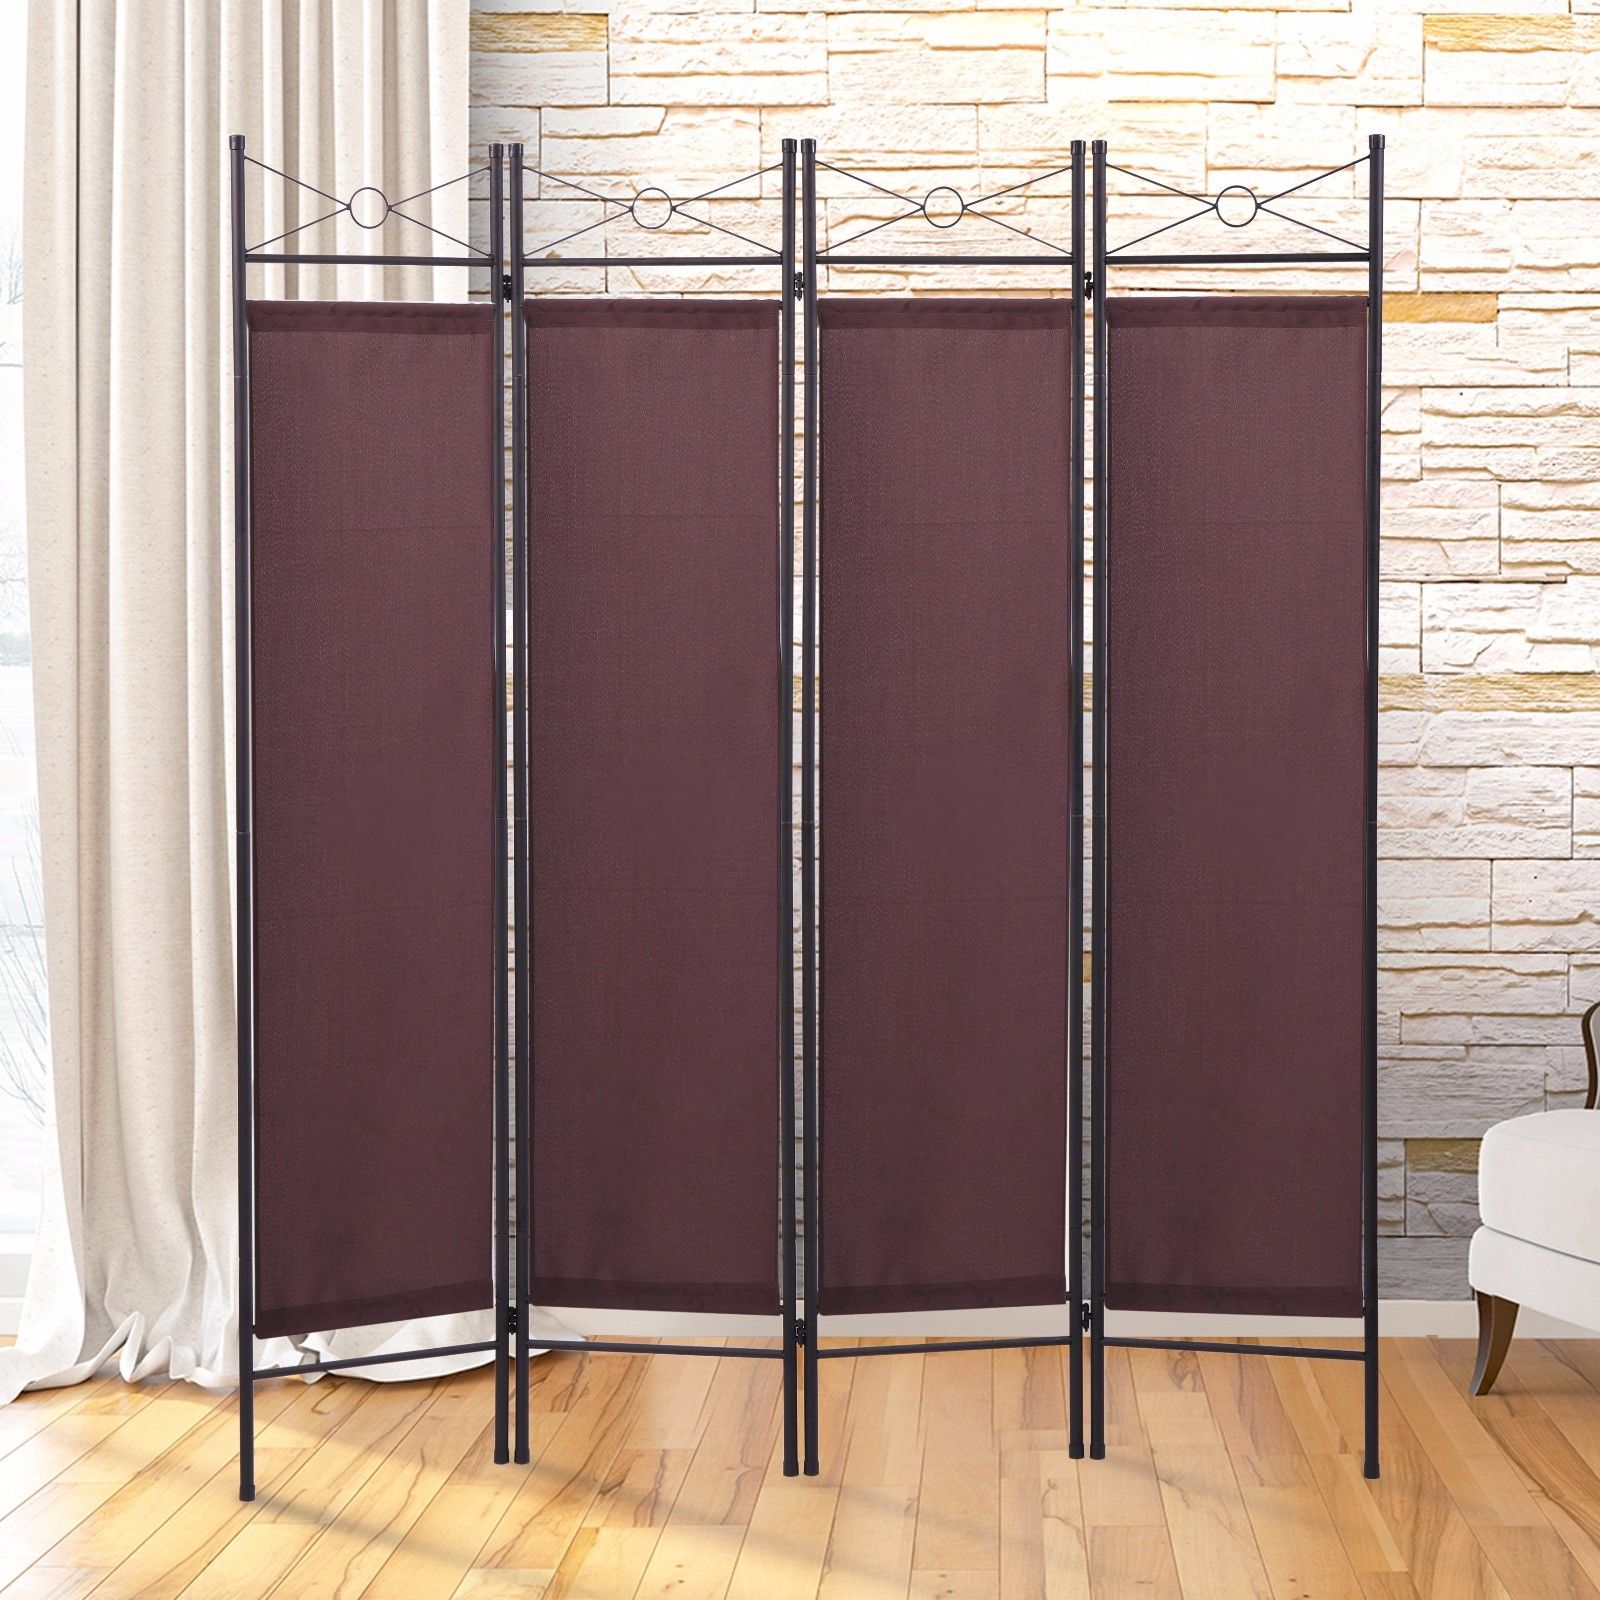 office room divider. lazymoon 4-panel steel room divider screen fabric folding partition home office privacy escpresso e